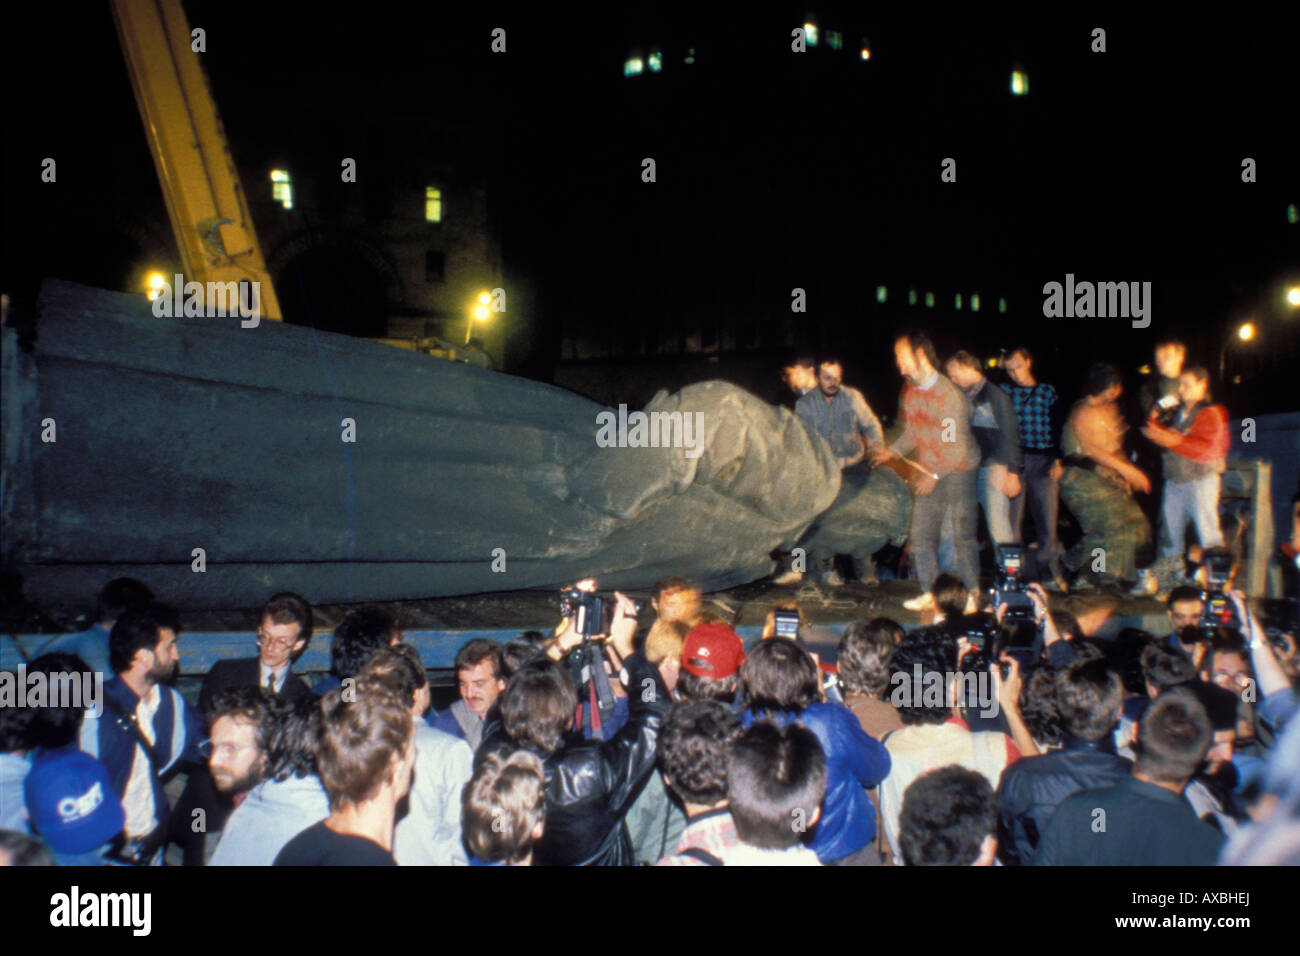 Dzerzhinsky monument outside KGB headquarters is removed from pedestal during coup, Moscow, Russia, August 22, 1991 Stock Photo